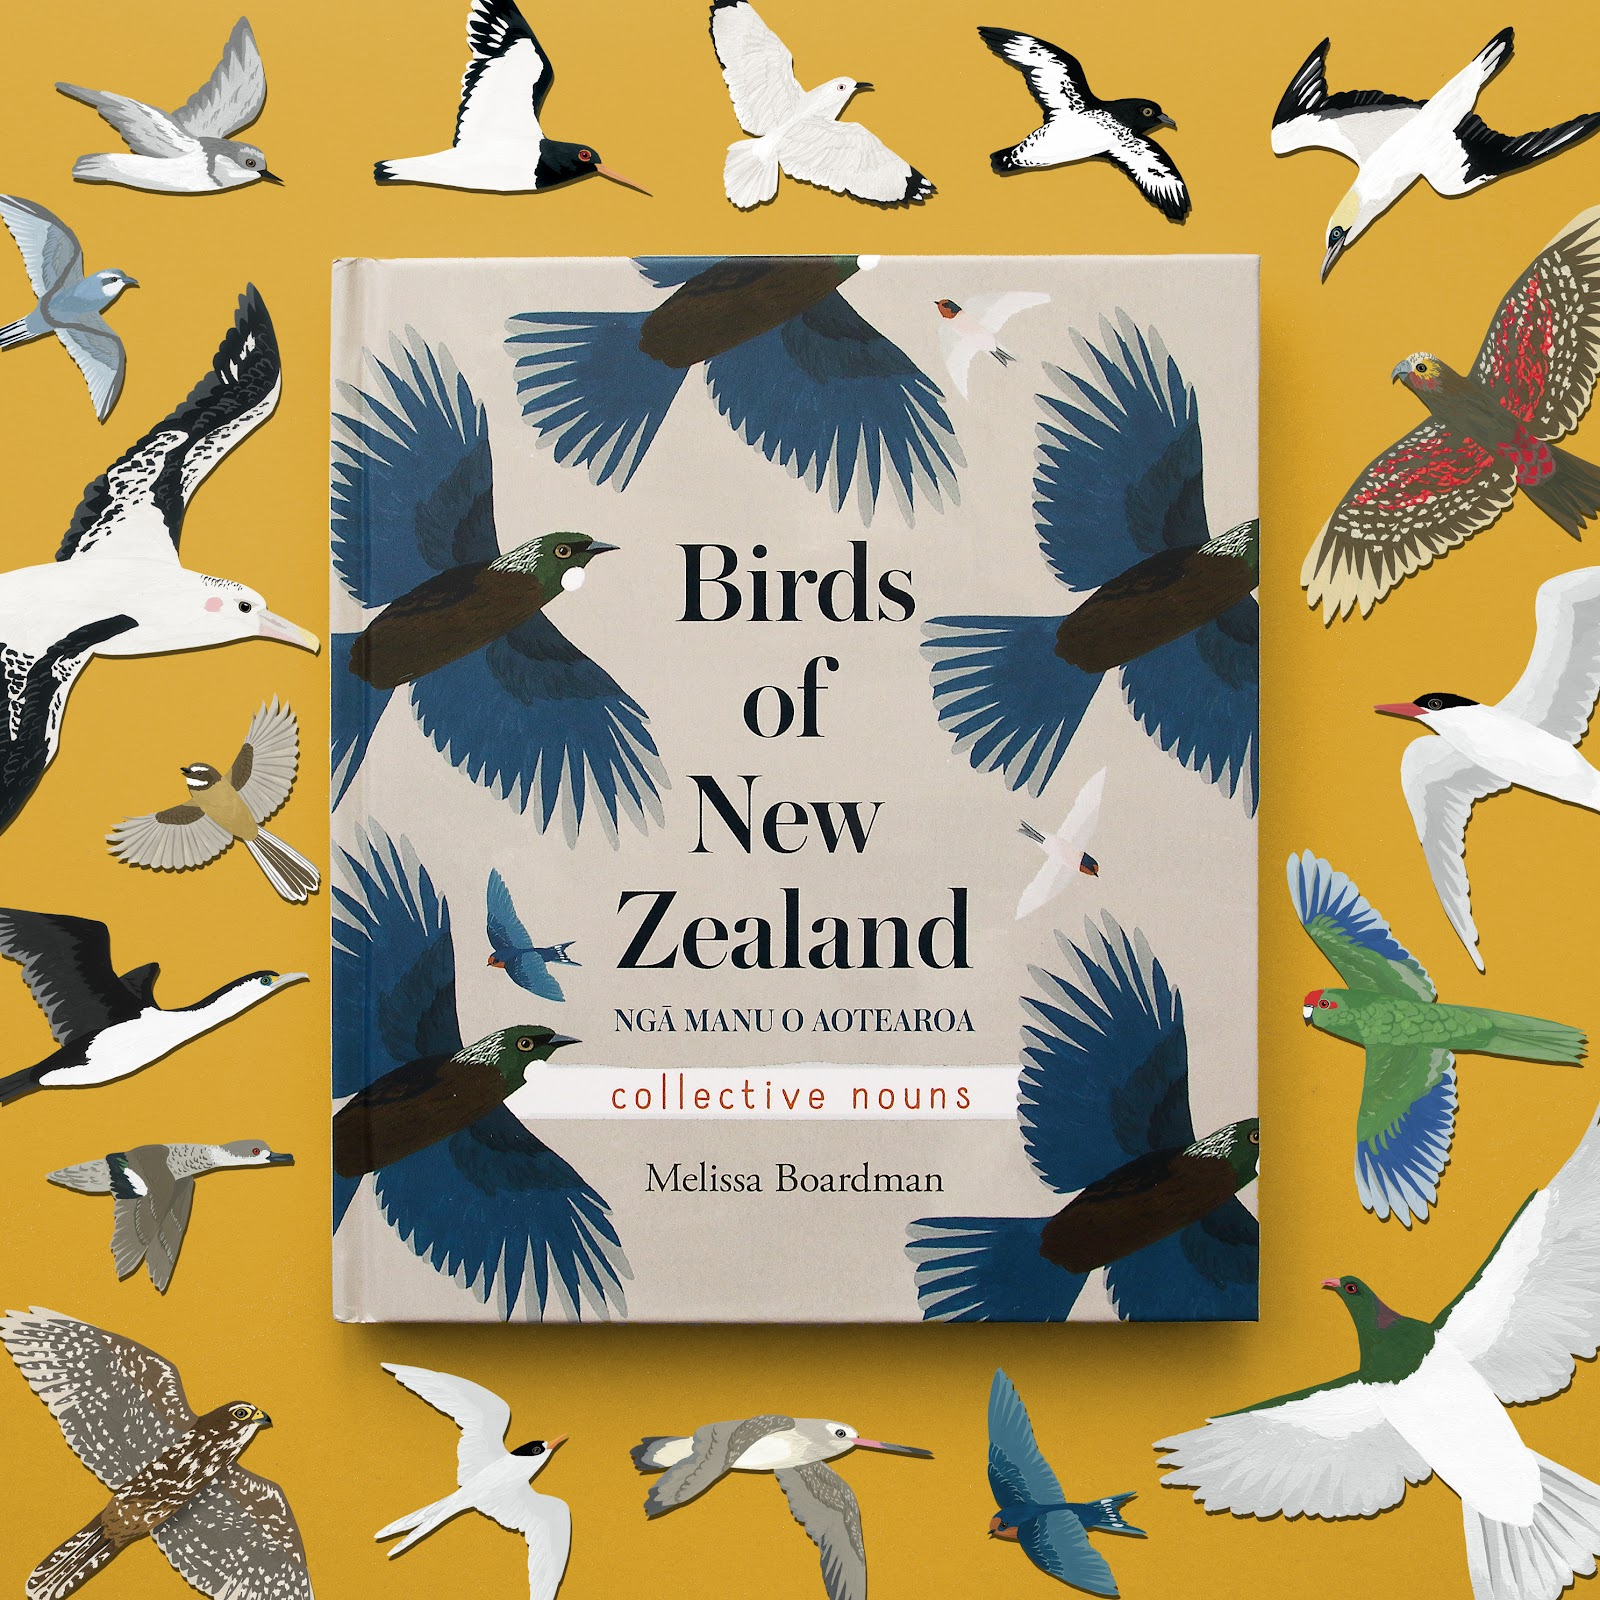 A close up of Birds of New Zealand